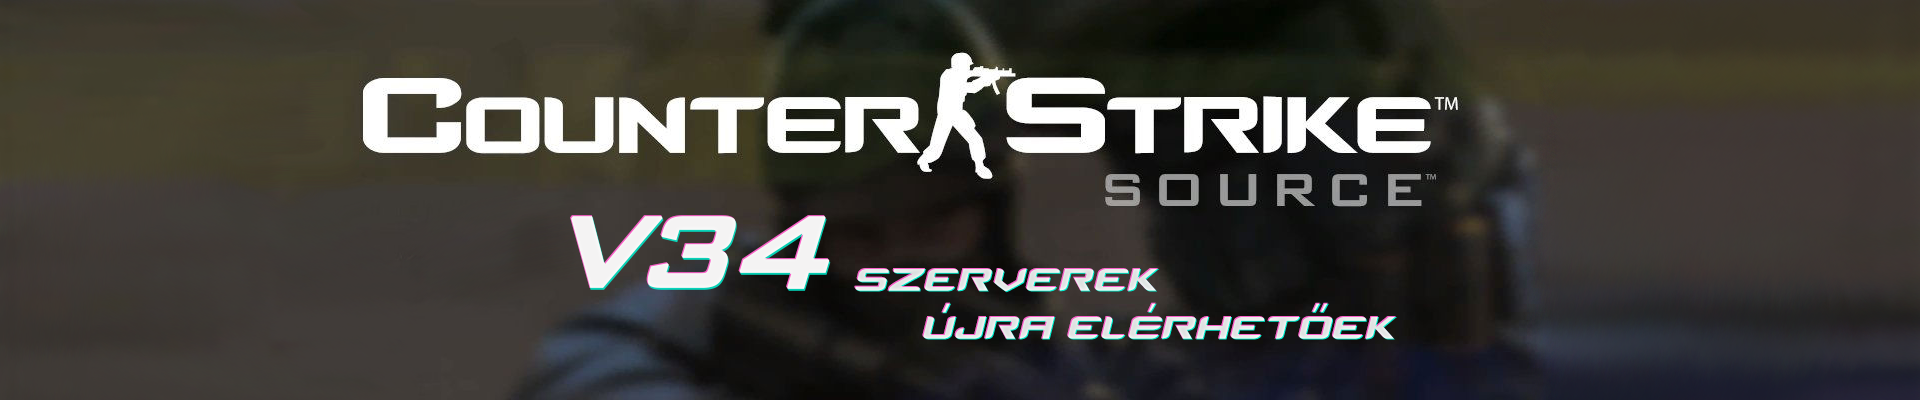 CS: Source V34 szerverek